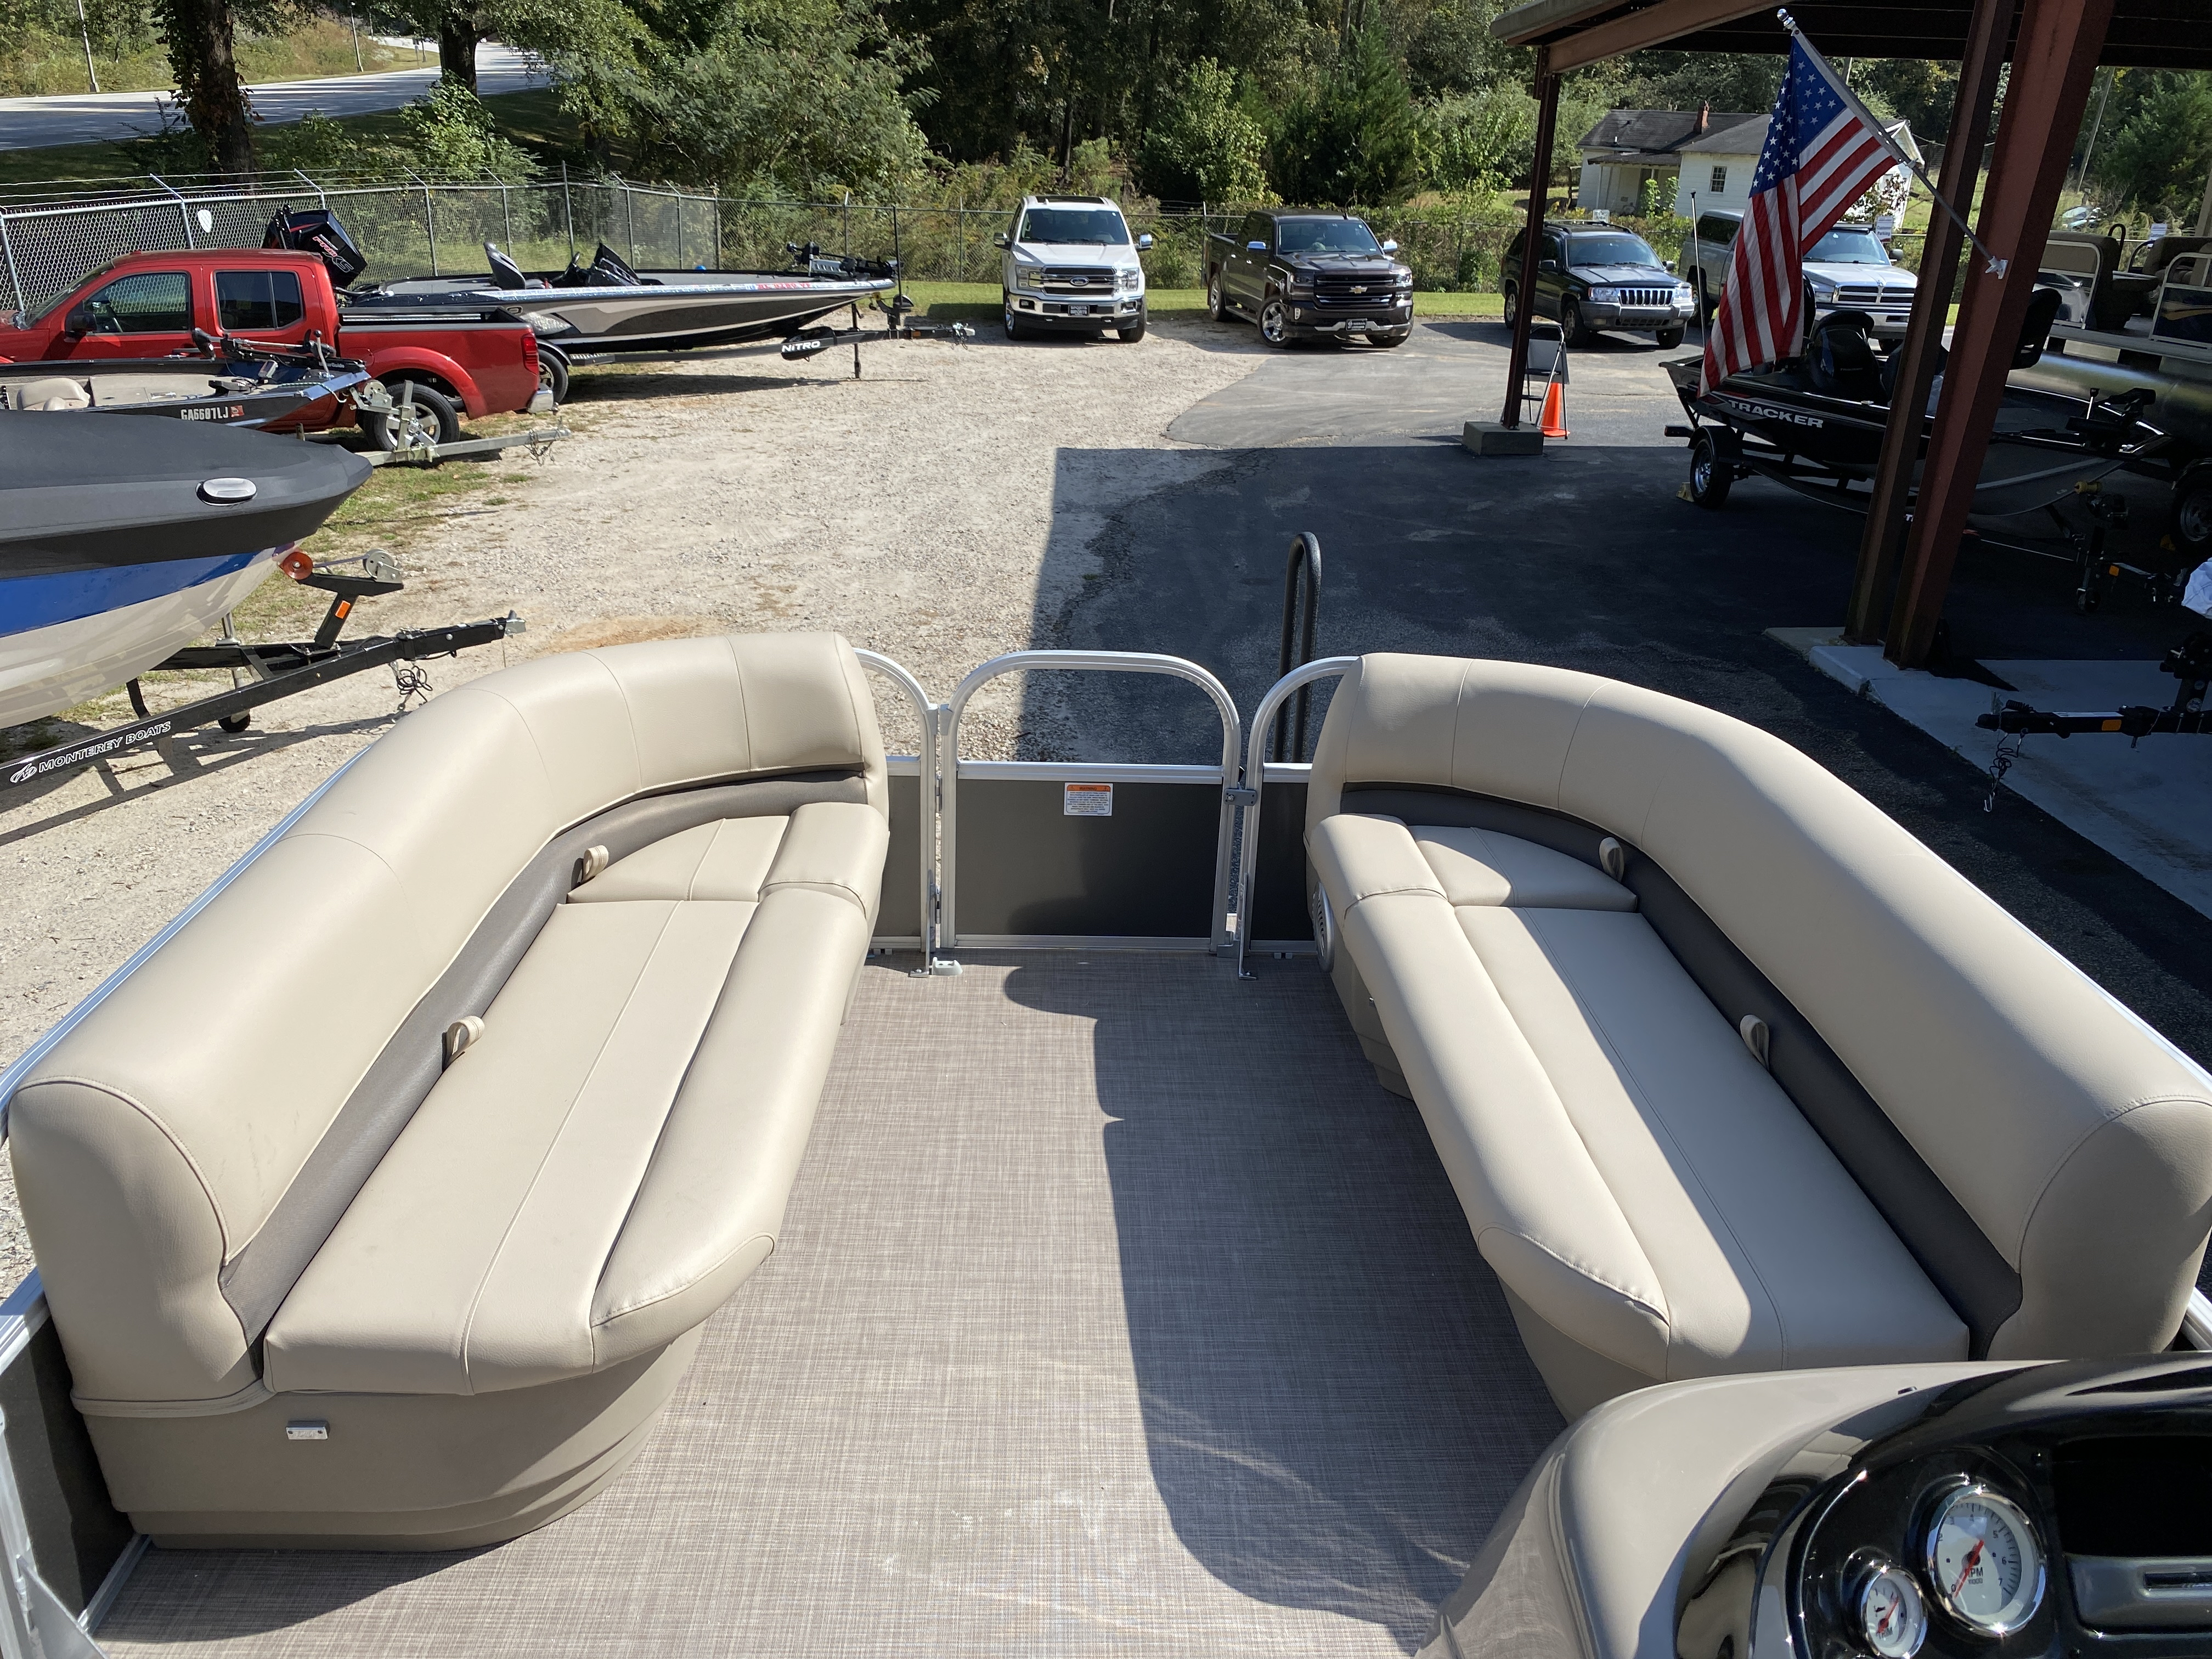 2021 Sun Tracker boat for sale, model of the boat is Party Barge 18 w/60ELPT 4S CT & Image # 41 of 50